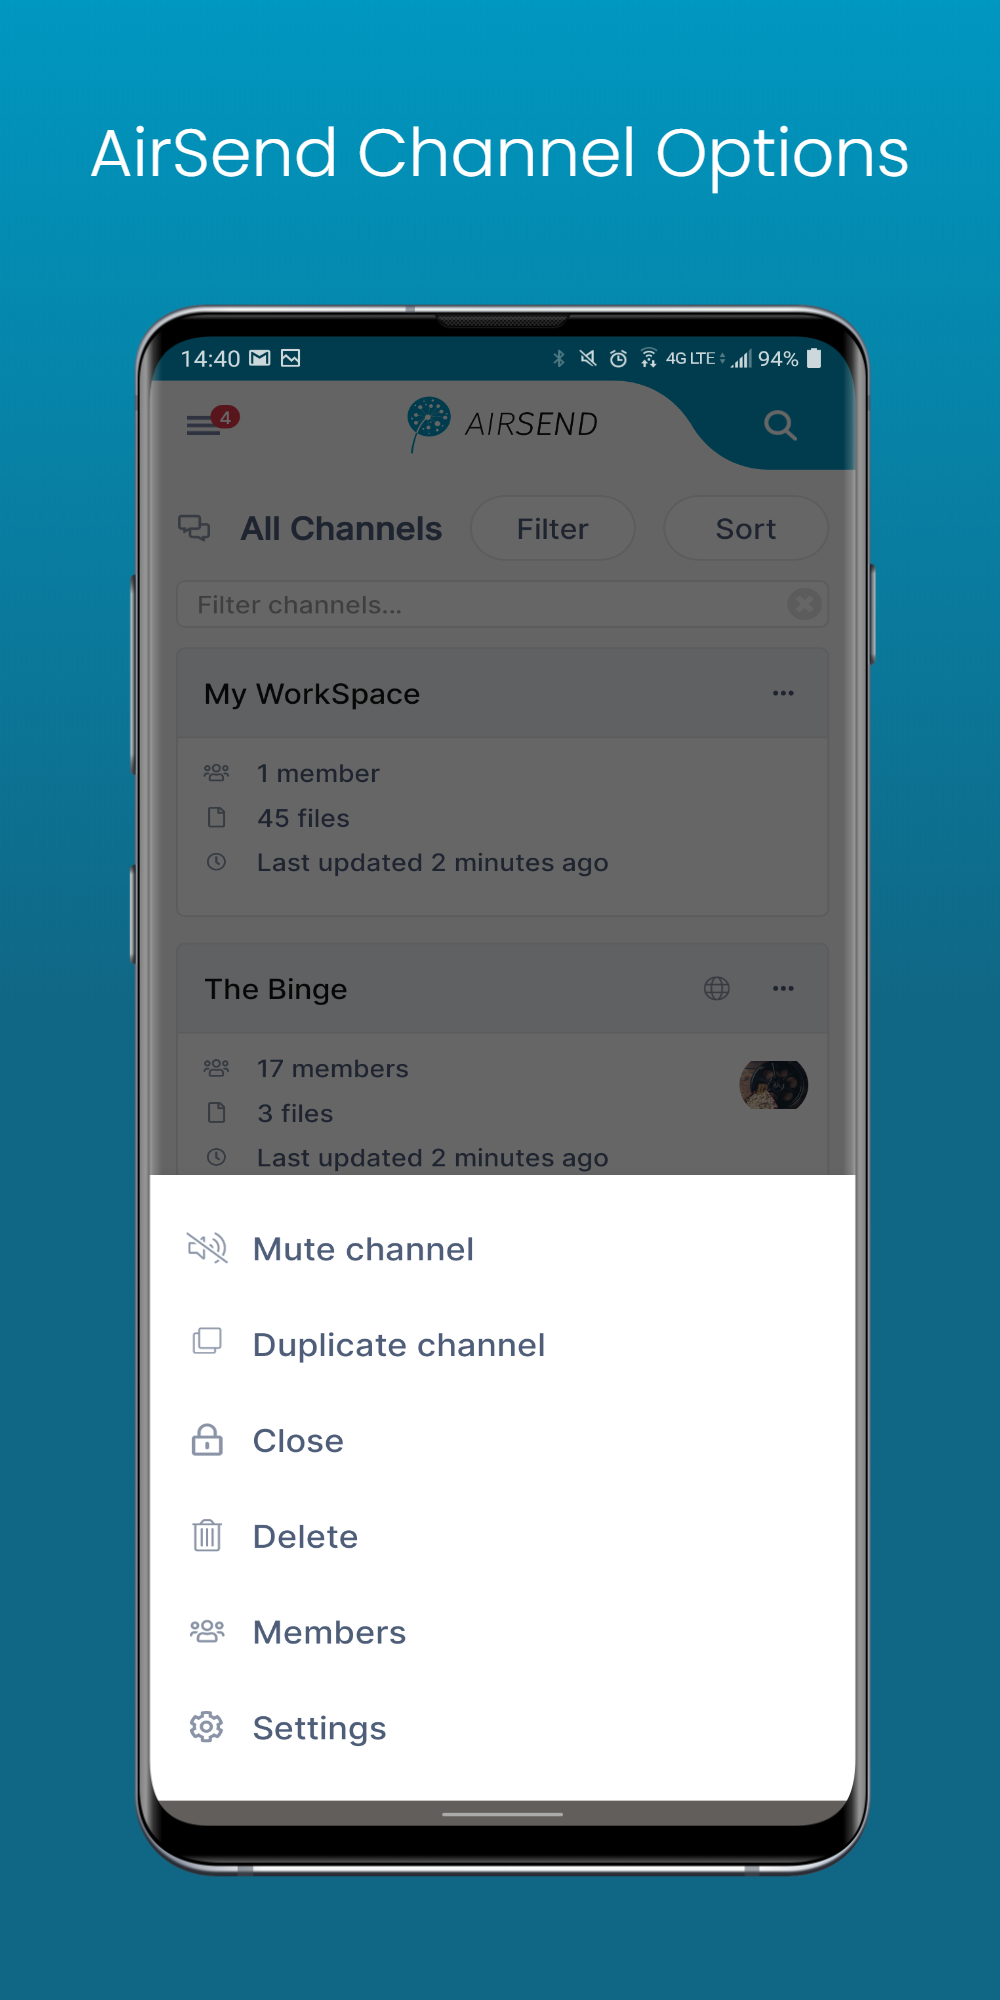 Image of AirSend Android Channel Options